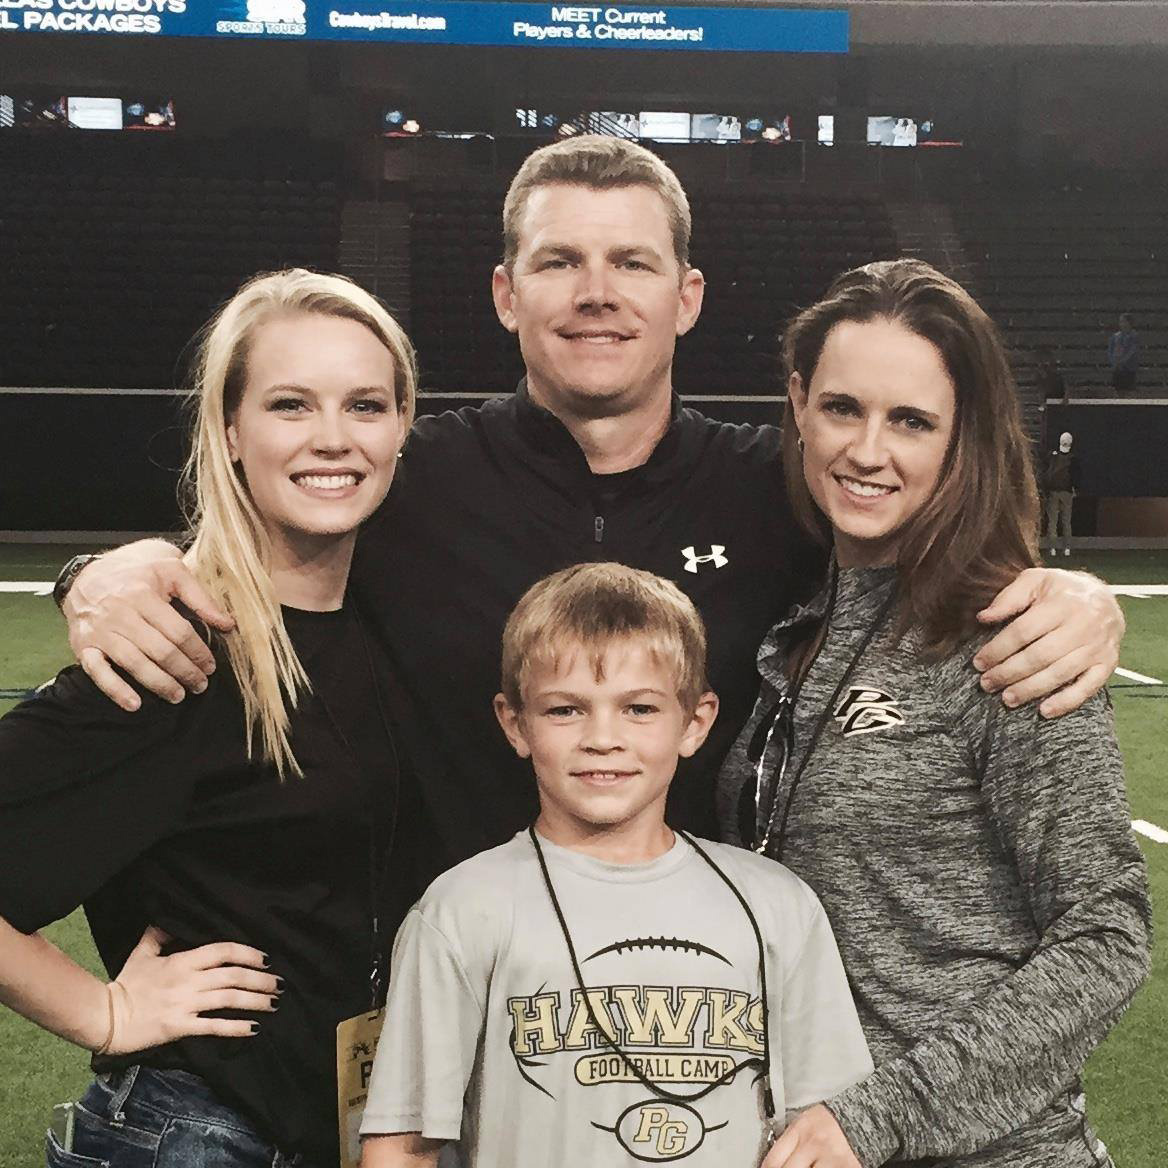 ^ After a playoff win this year, Josh visited with his daughter, Jordan; wife, Jennifer; and son, Jackson.